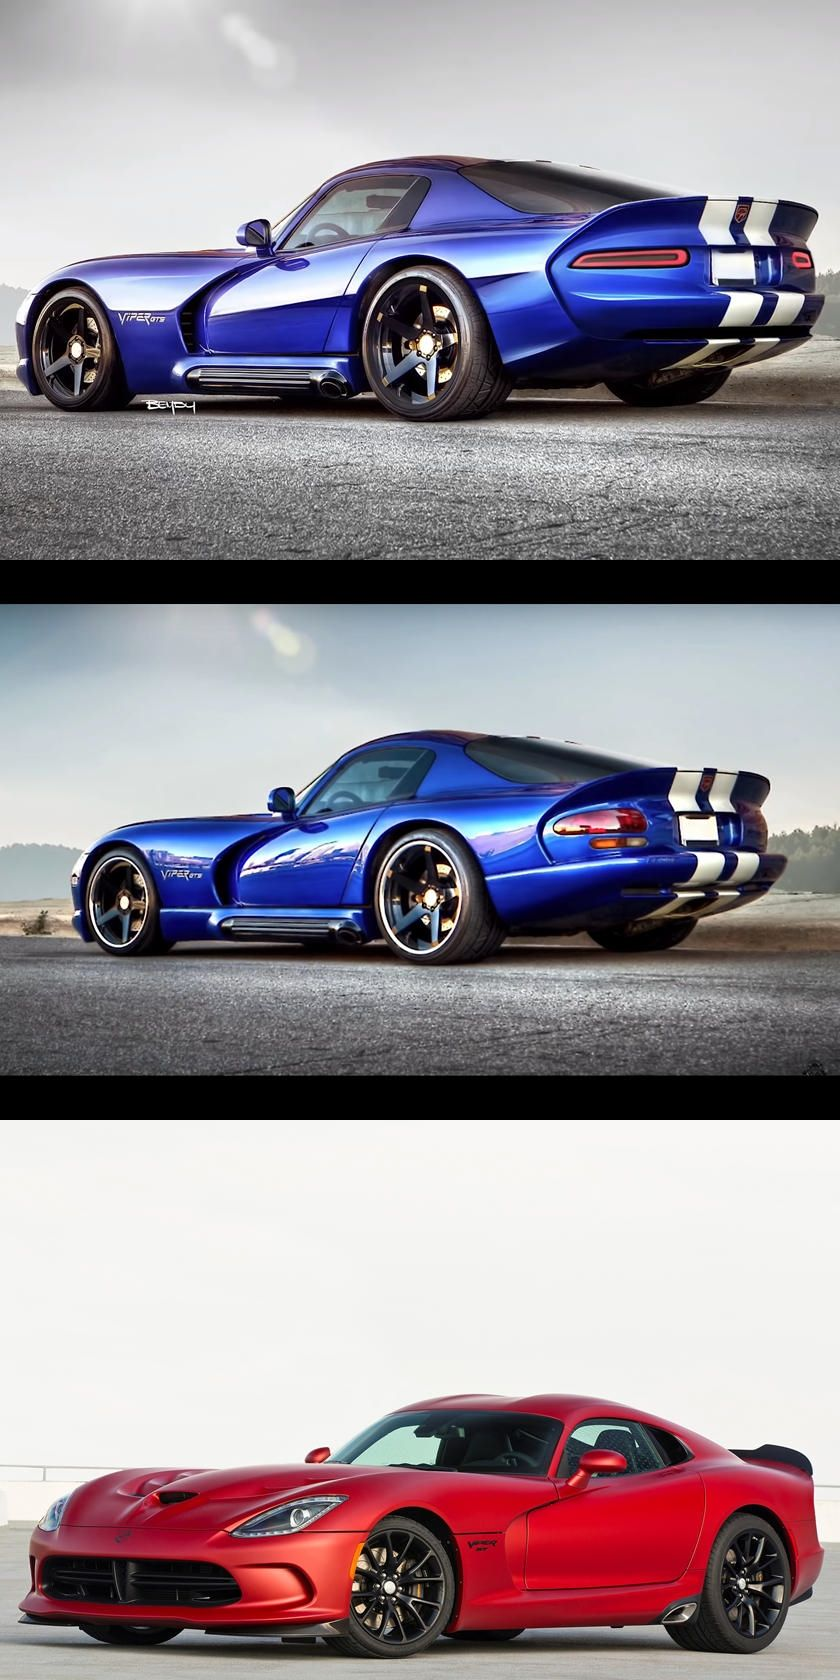 Dodge Viper Gts Redesigned For 2020 As Aggressive And Classically Proportioned As Ever In 2020 Dodge Viper Gts Dodge Viper Viper Gts